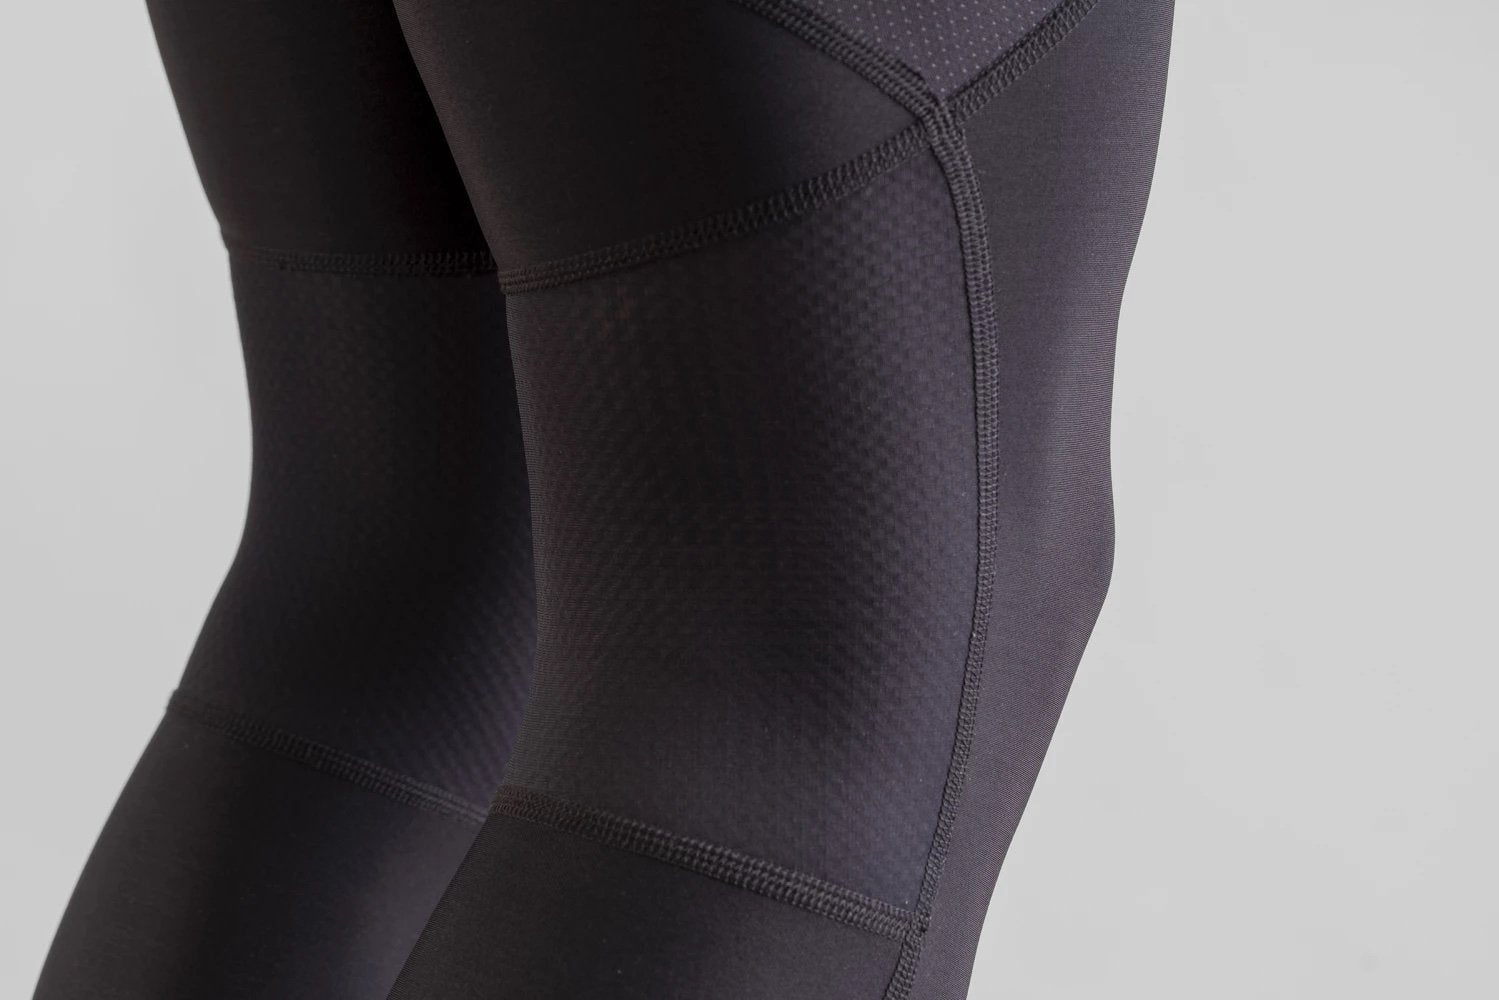 ThermoRoubaix Winter Tights 2.0 - Black Bib Tights Isadore